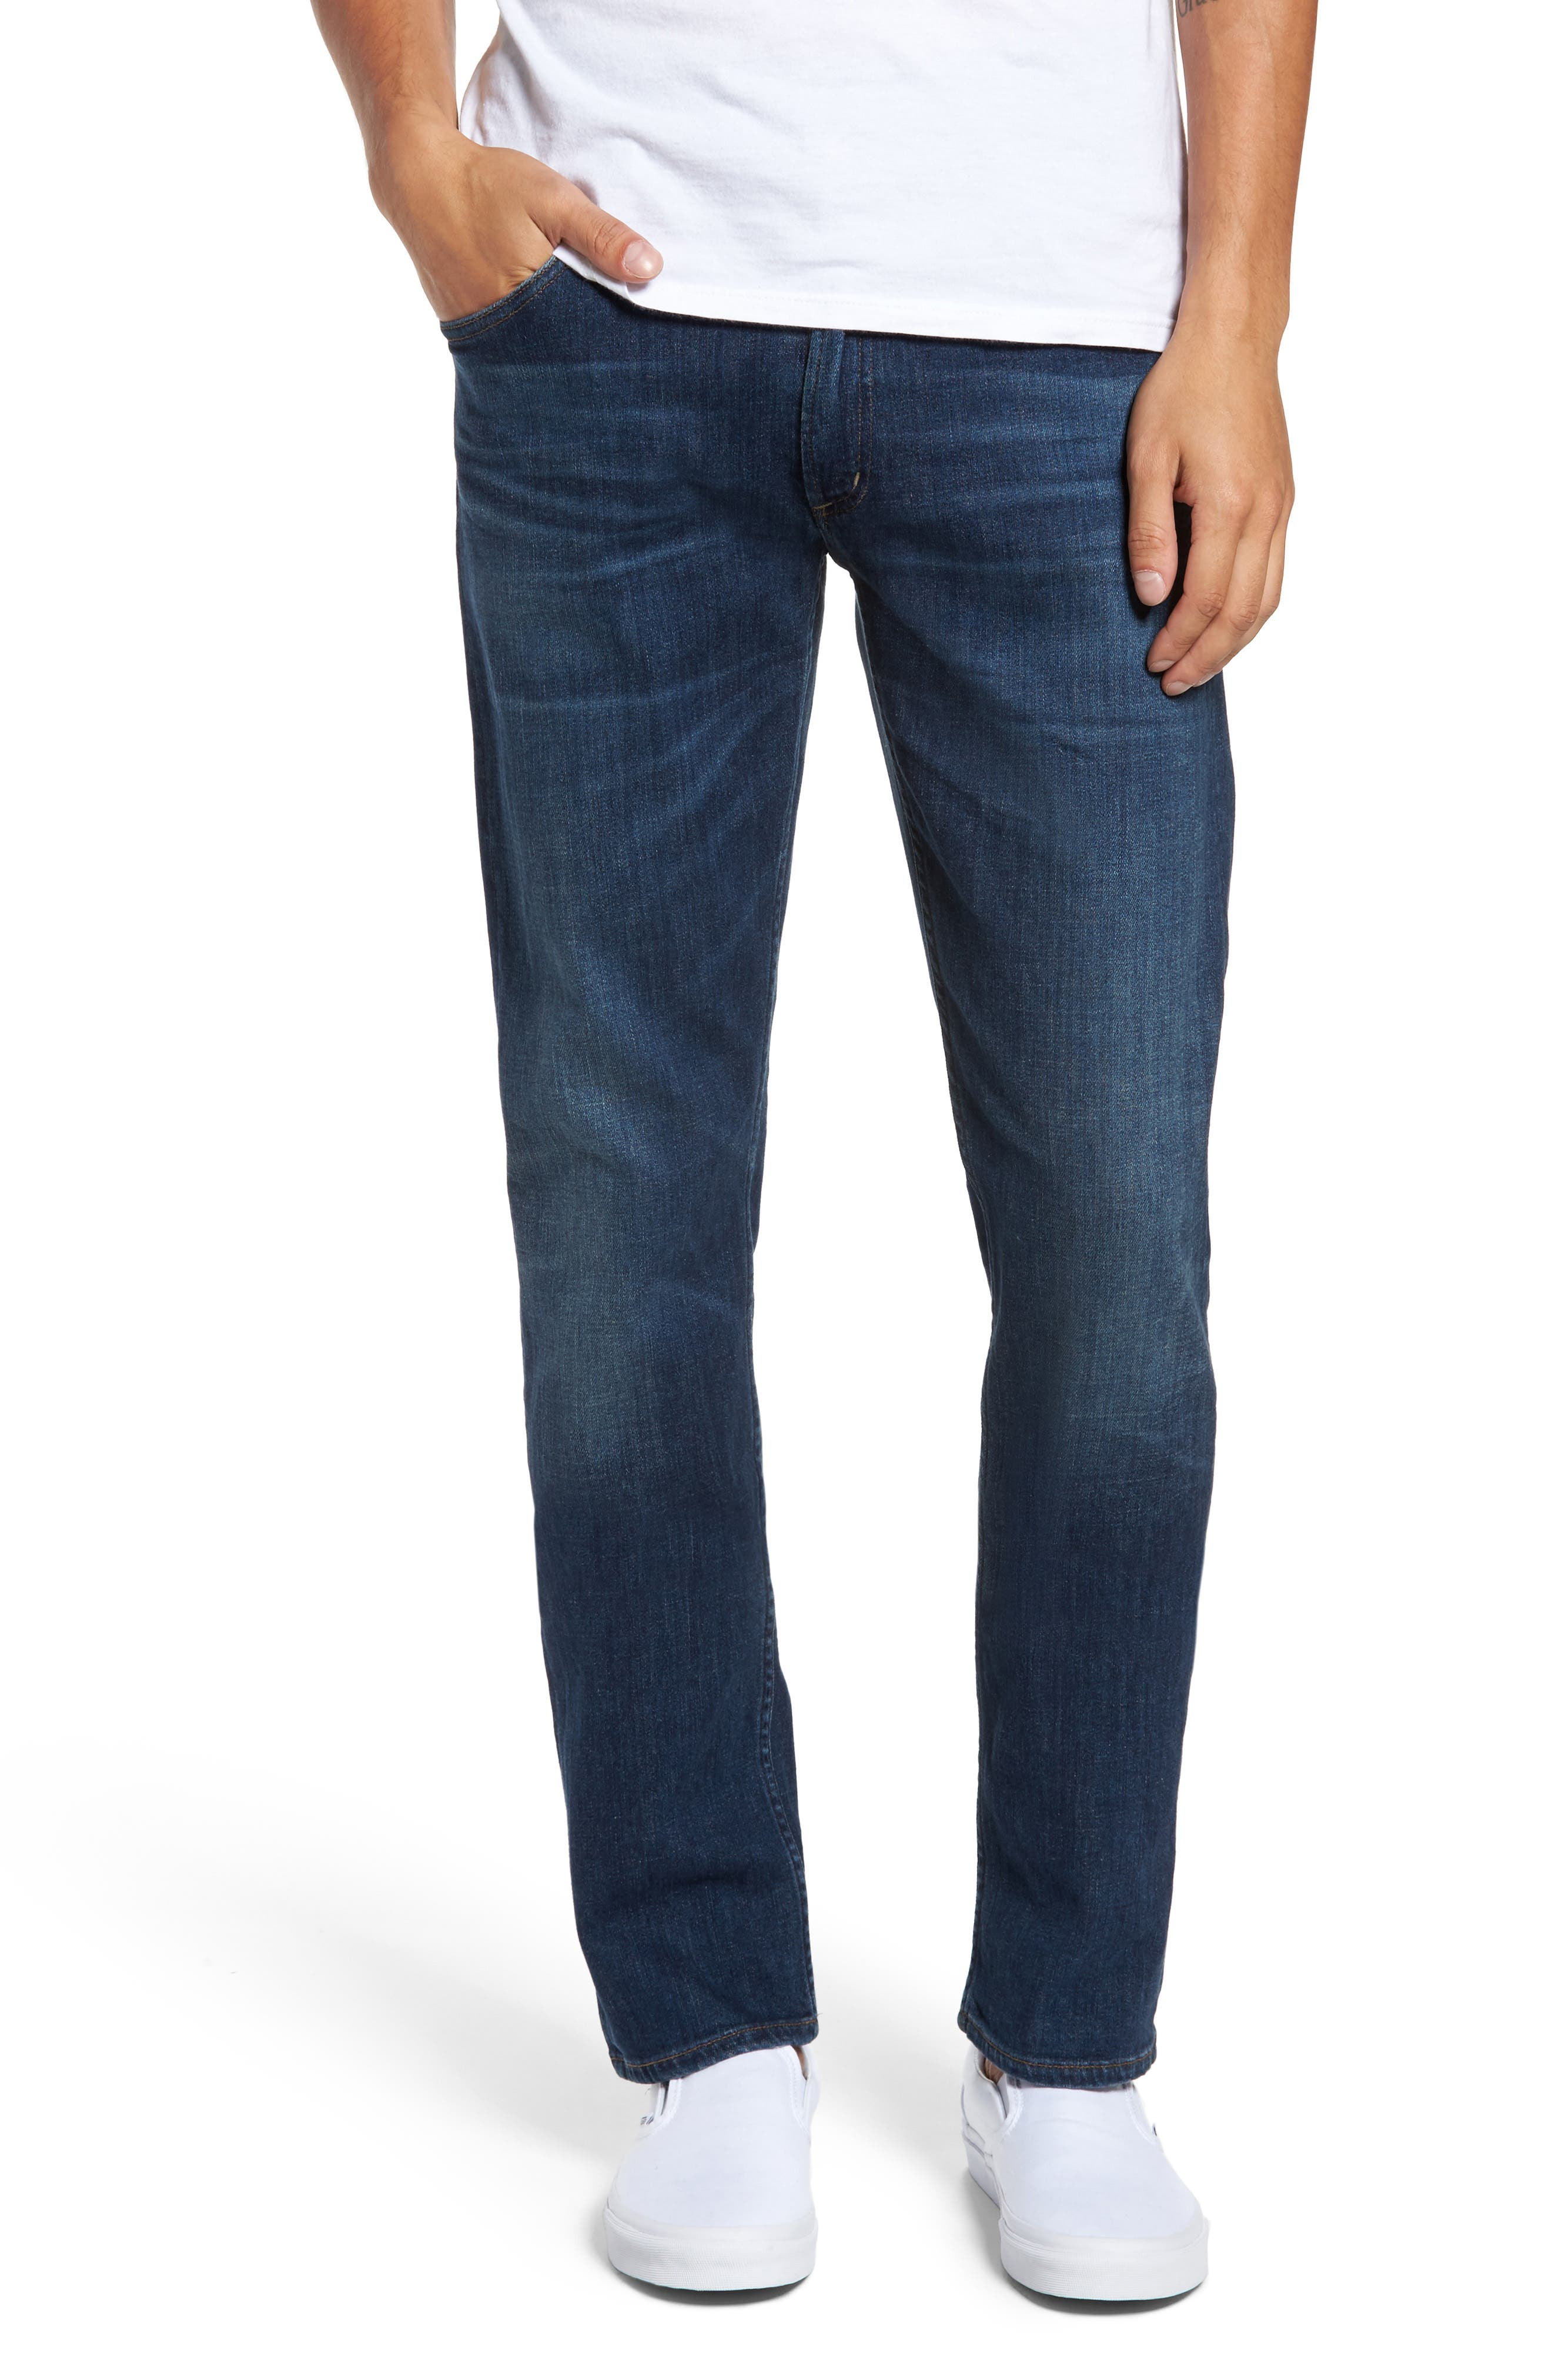 Bowery Slim Fit Jeans,                             Main thumbnail 1, color,                             401